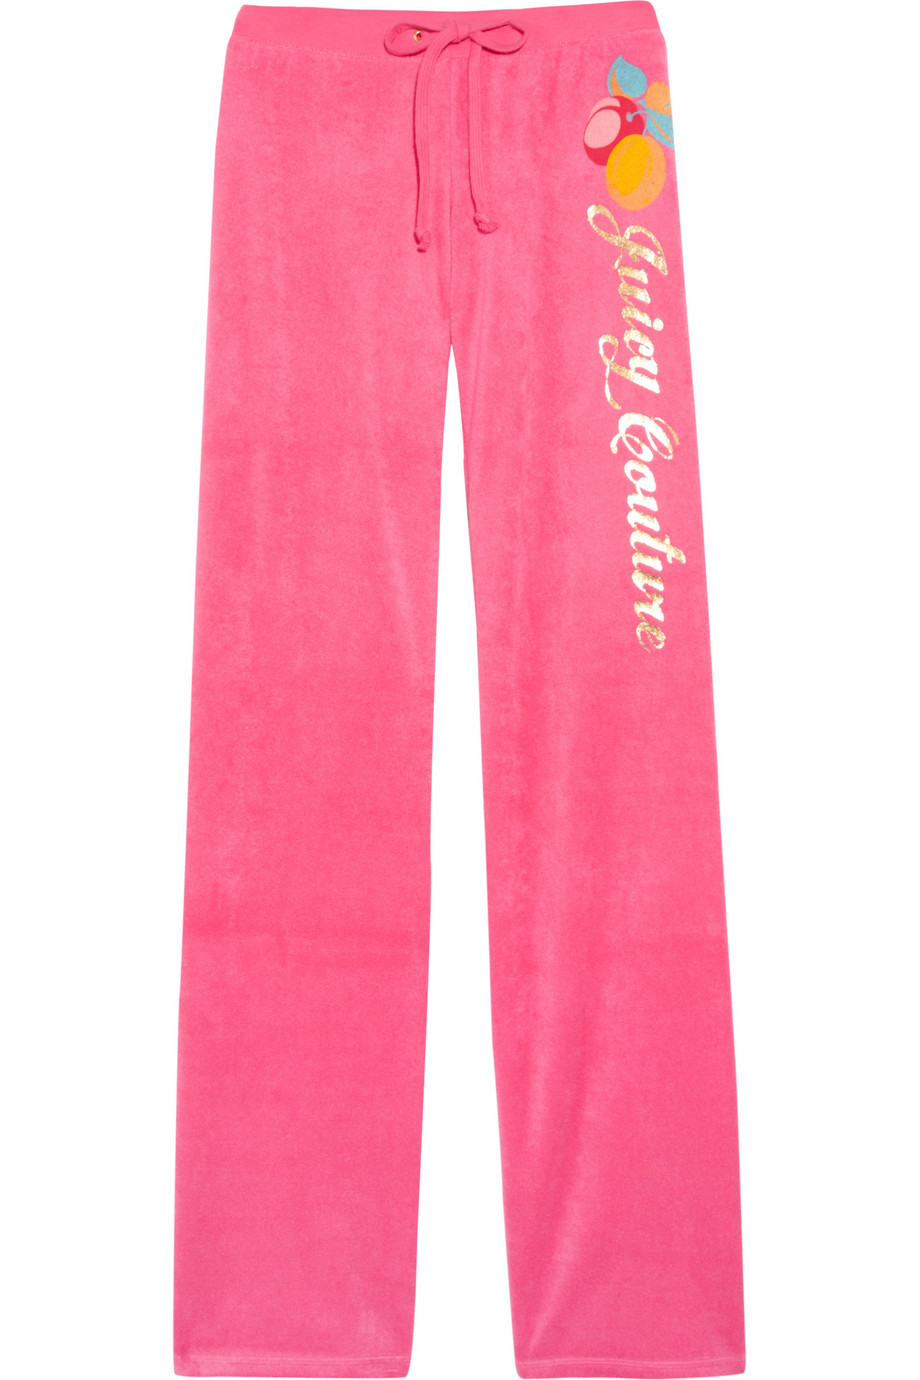 Lyst Juicy Couture Printed Velour Track Pants In Pink